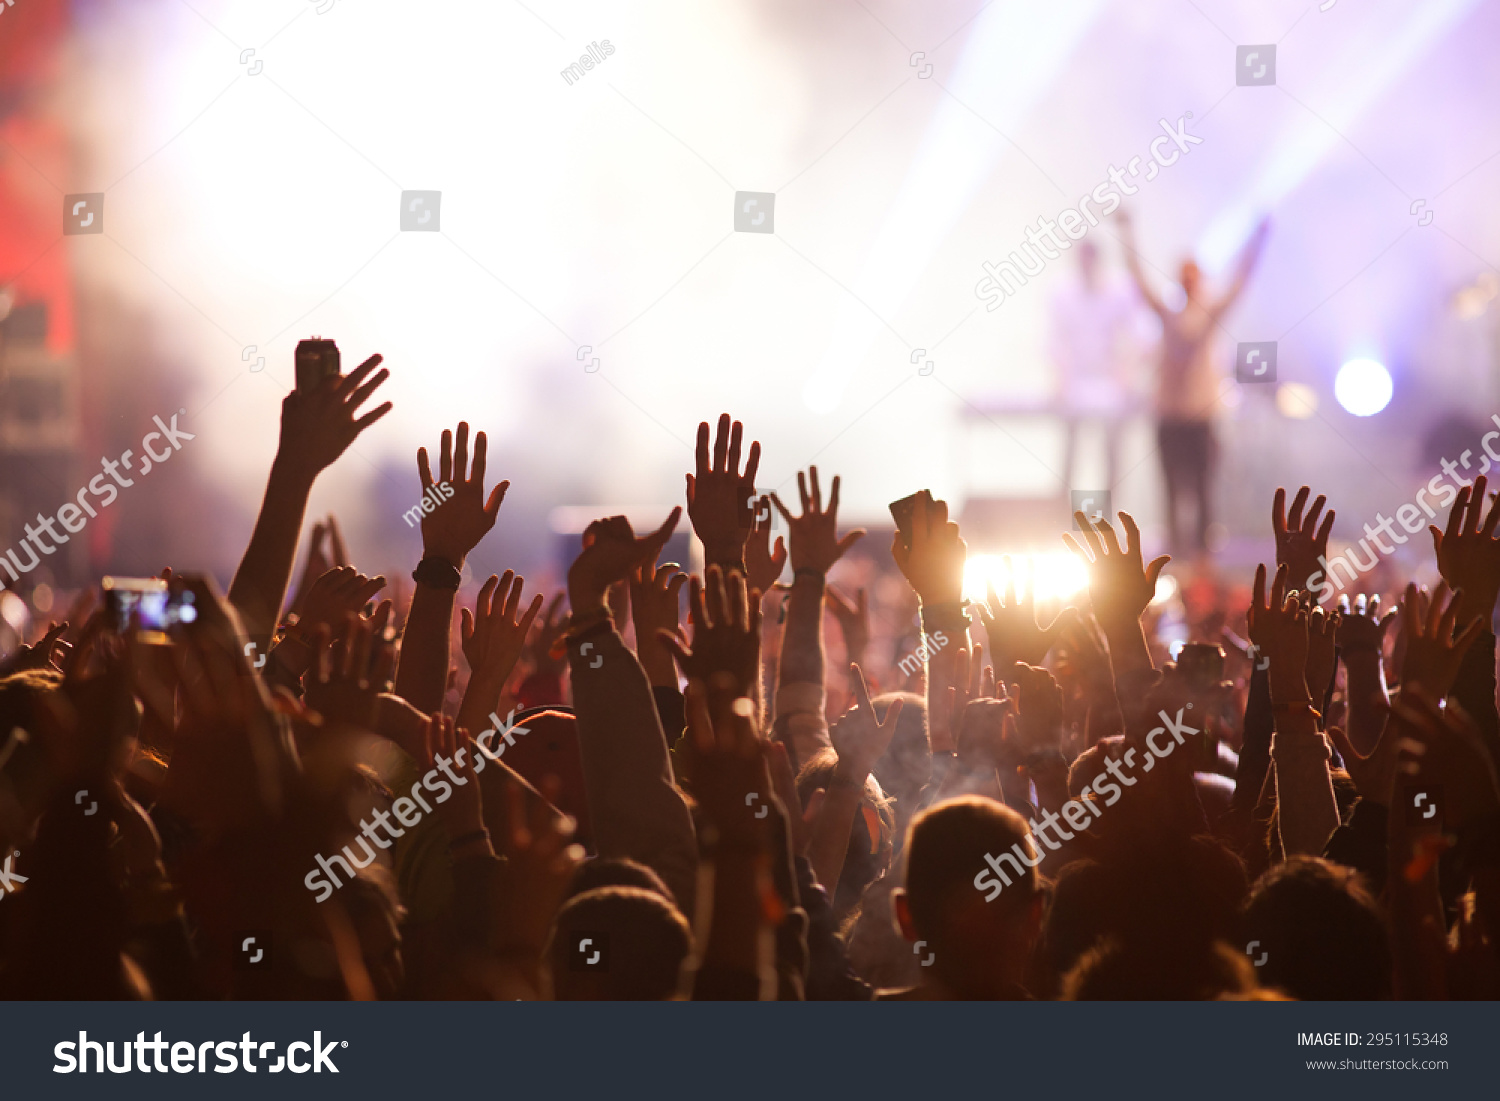 Crowd at concert and blurred stage lights #295115348